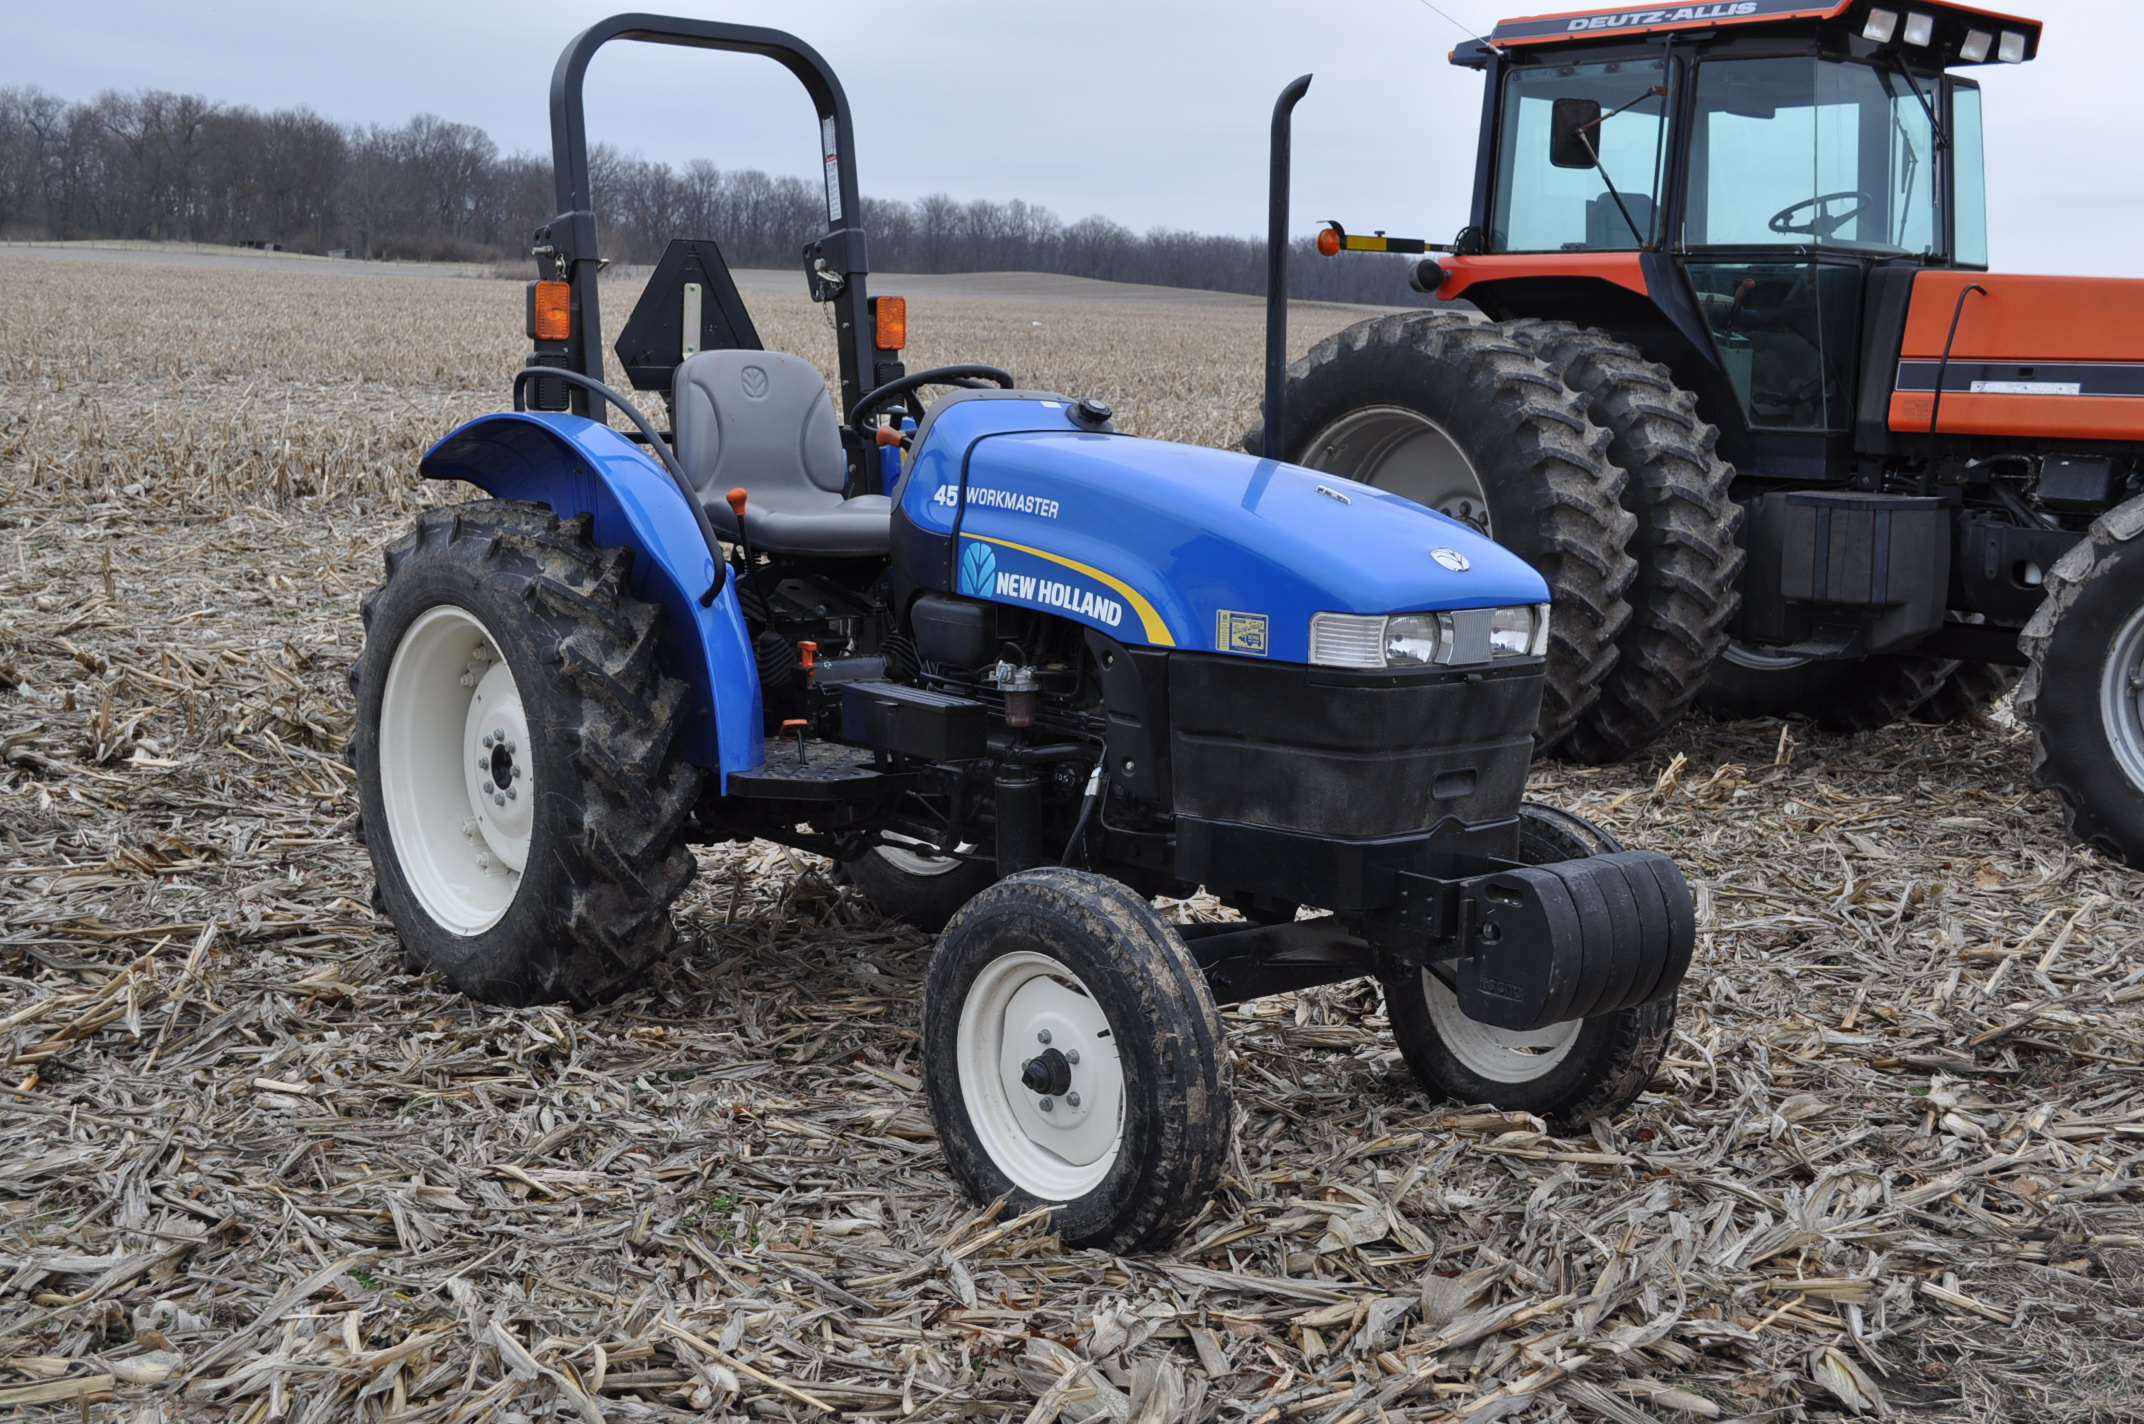 New Holland Workmaster 45 tractor, front wts, 12.4/11-28 rear, 6.00-16 front, shuttle shift, diesel, - Image 4 of 14